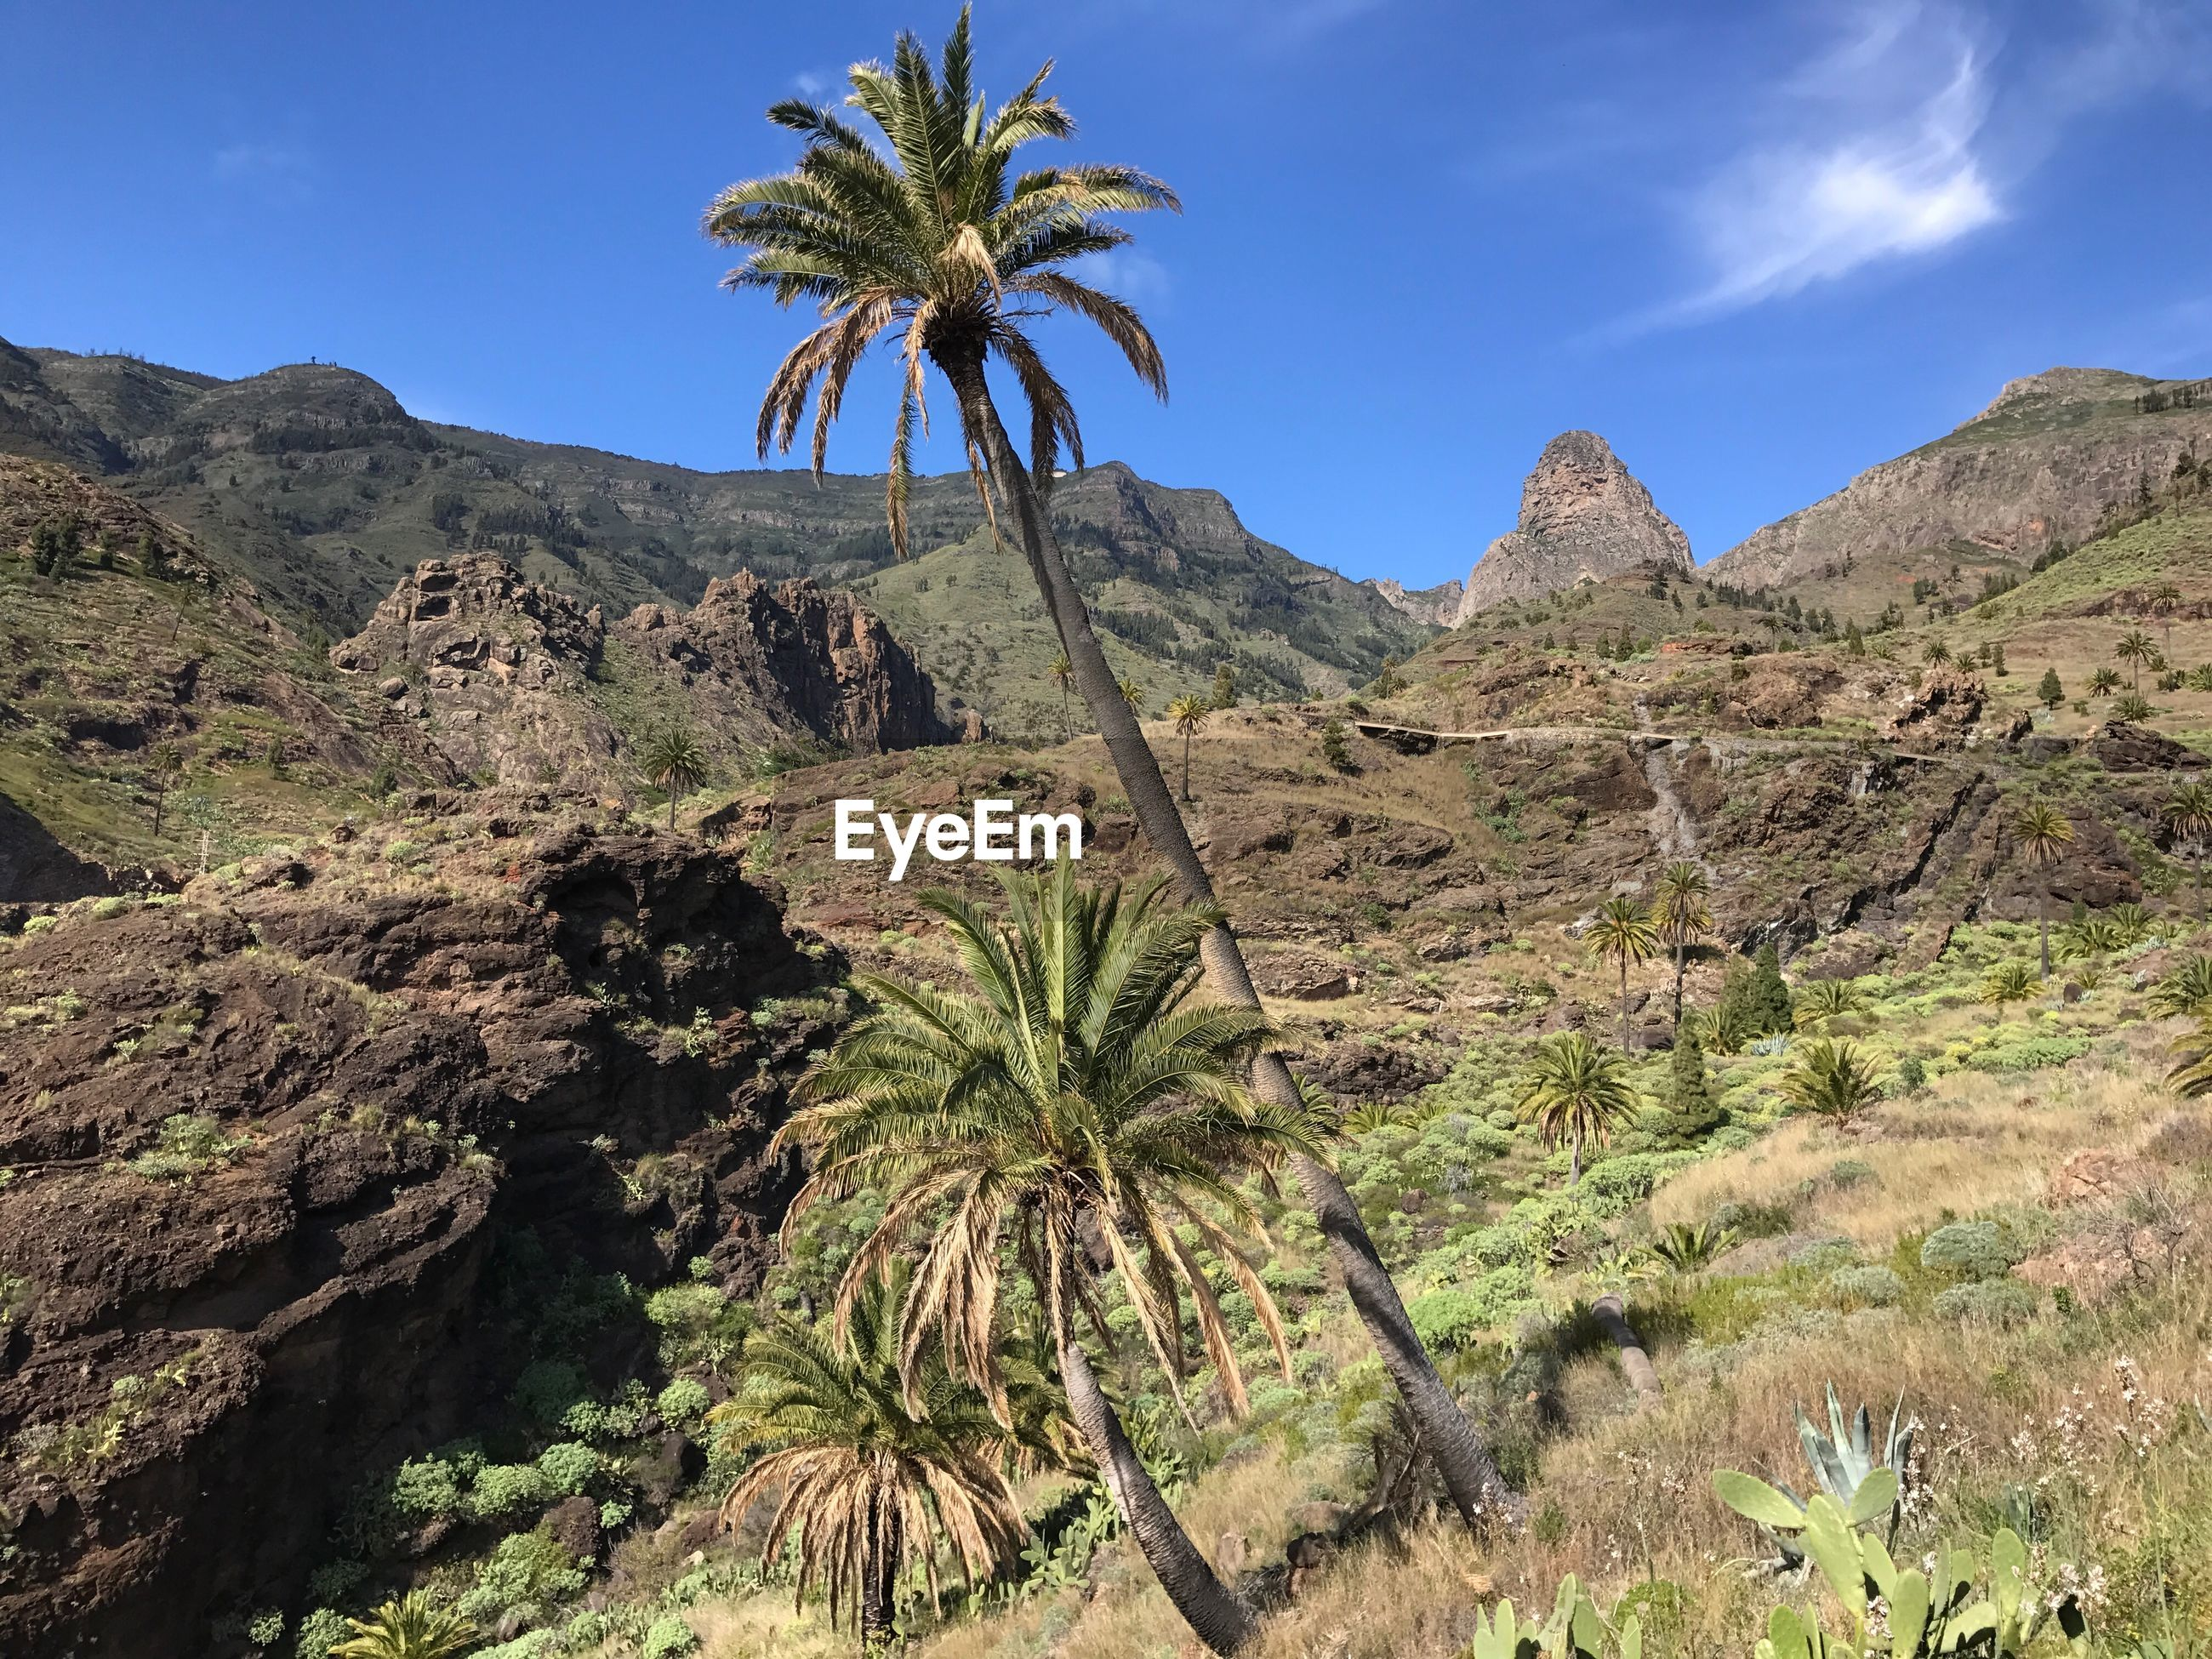 PALM TREES AGAINST MOUNTAINS